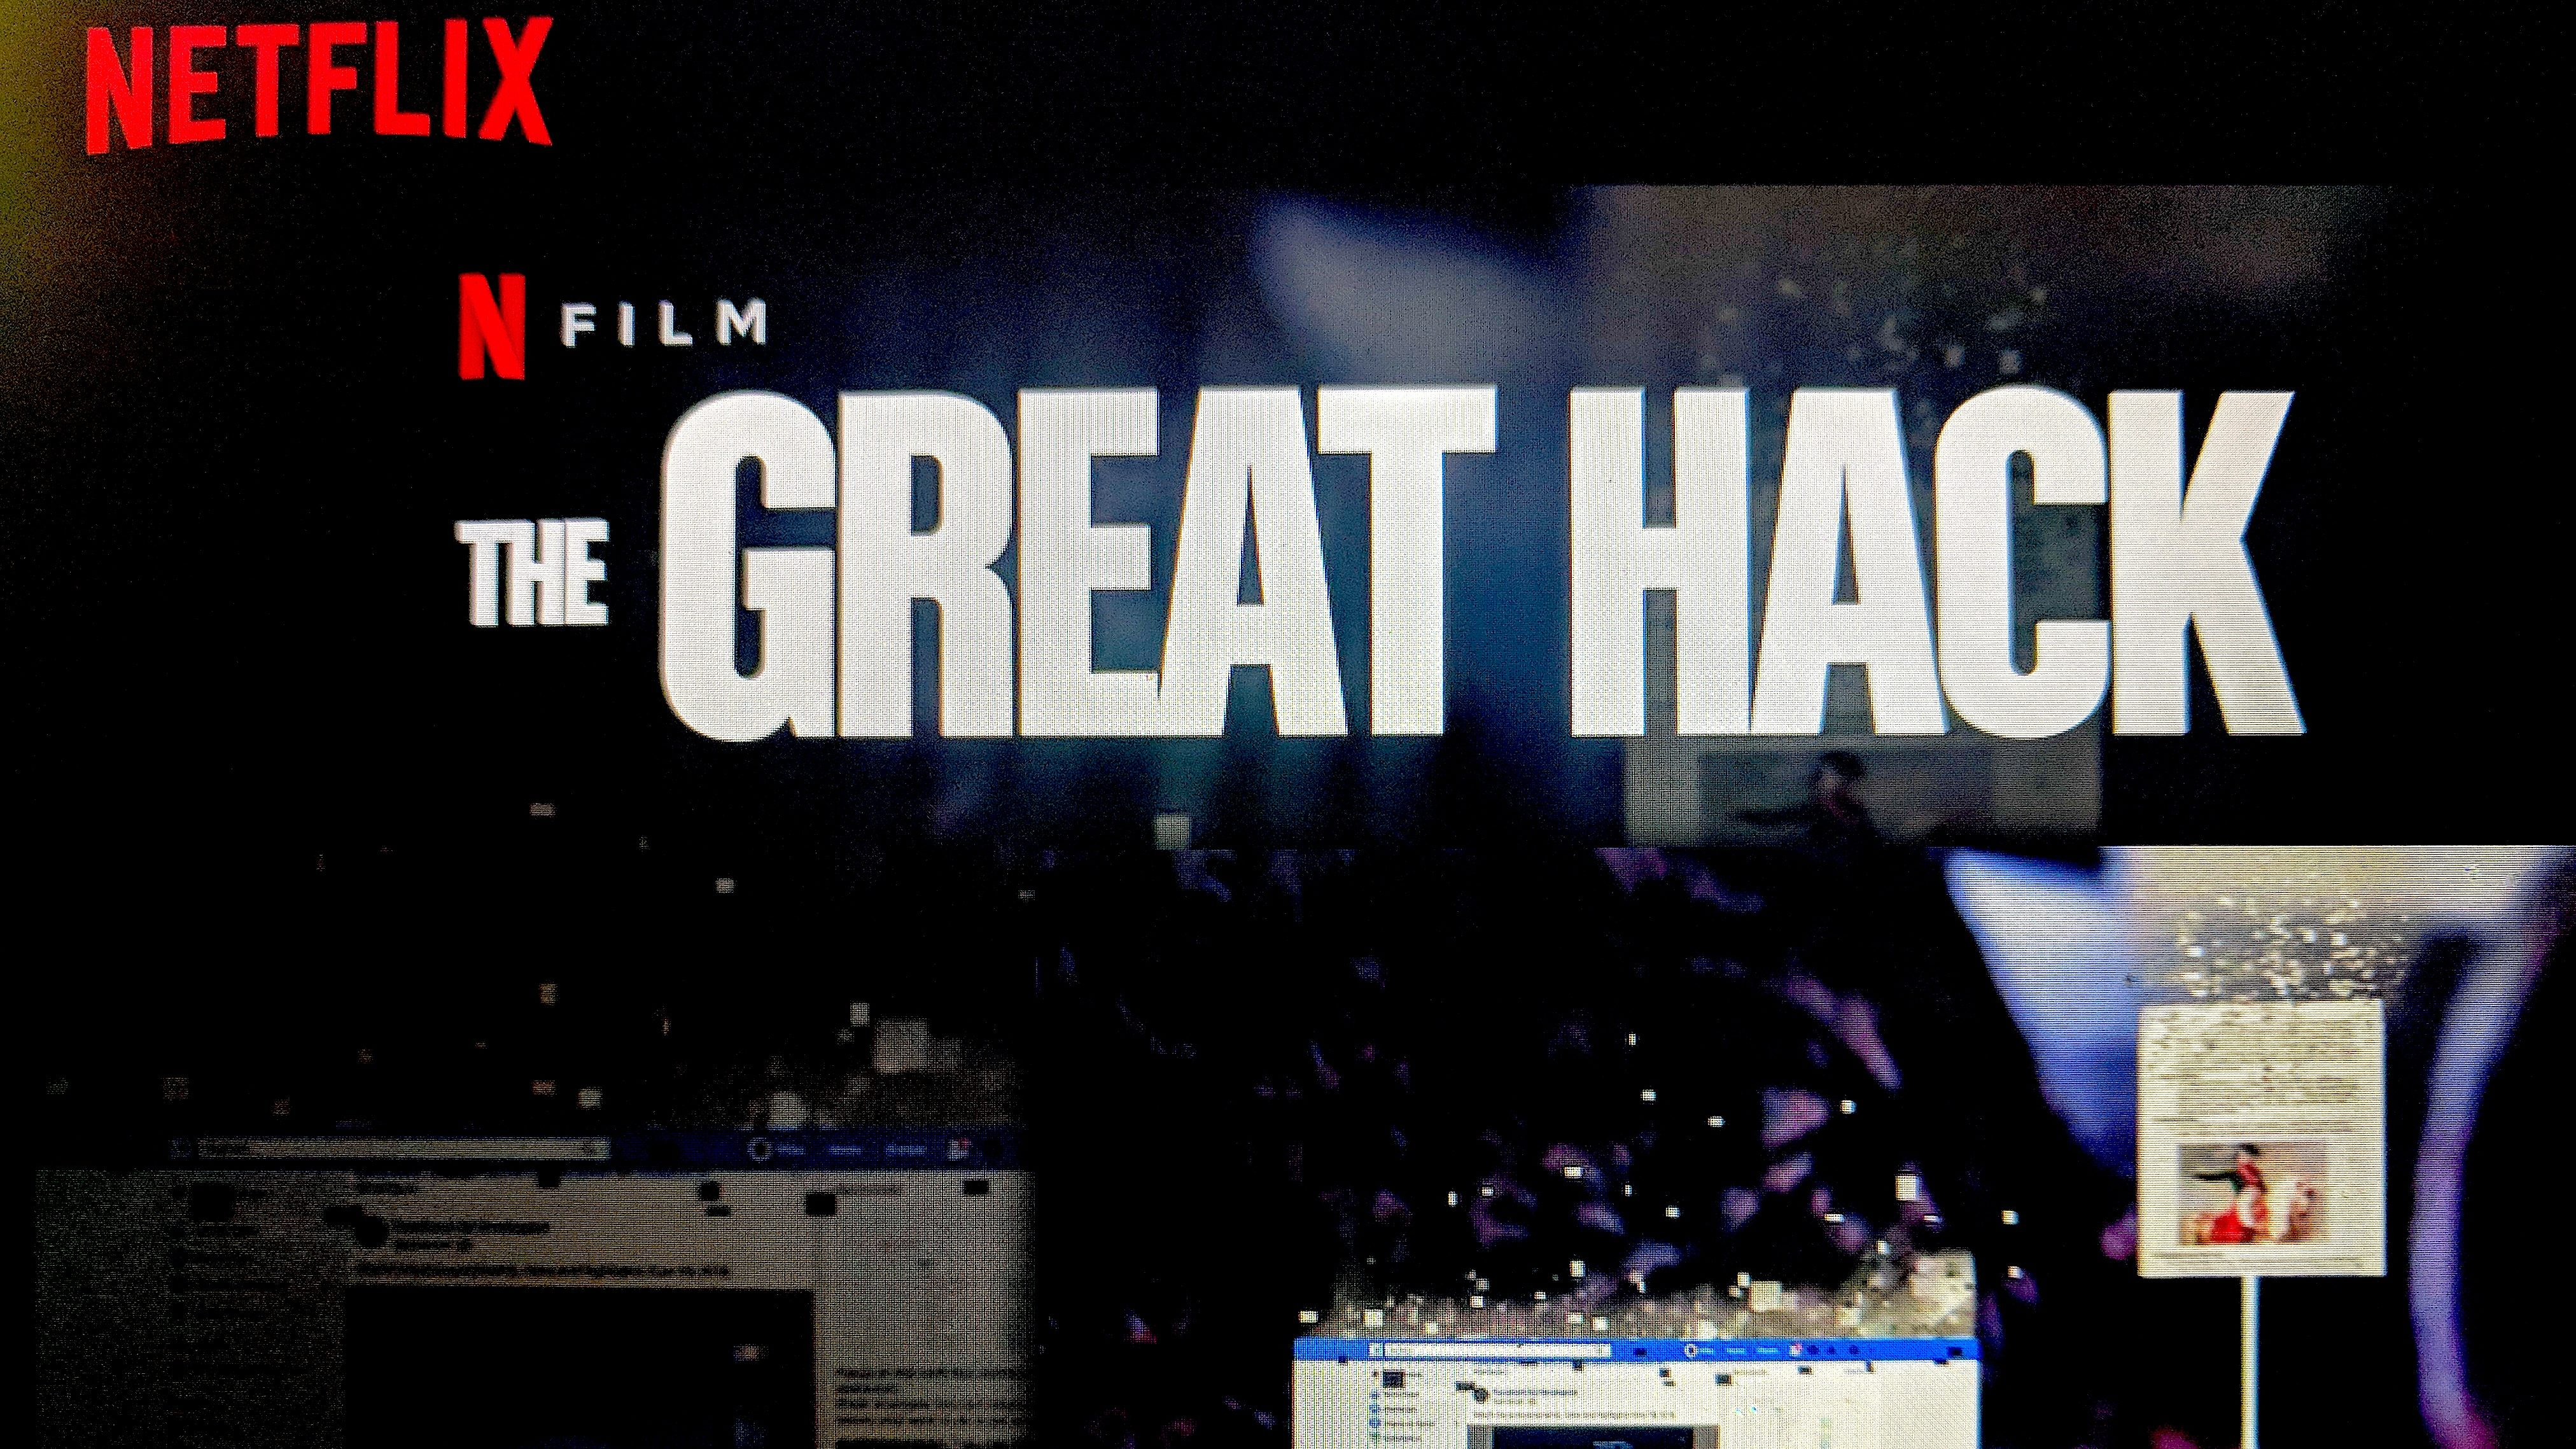 The Great Hack 2019 480p, 720p NF WEB-DL x264